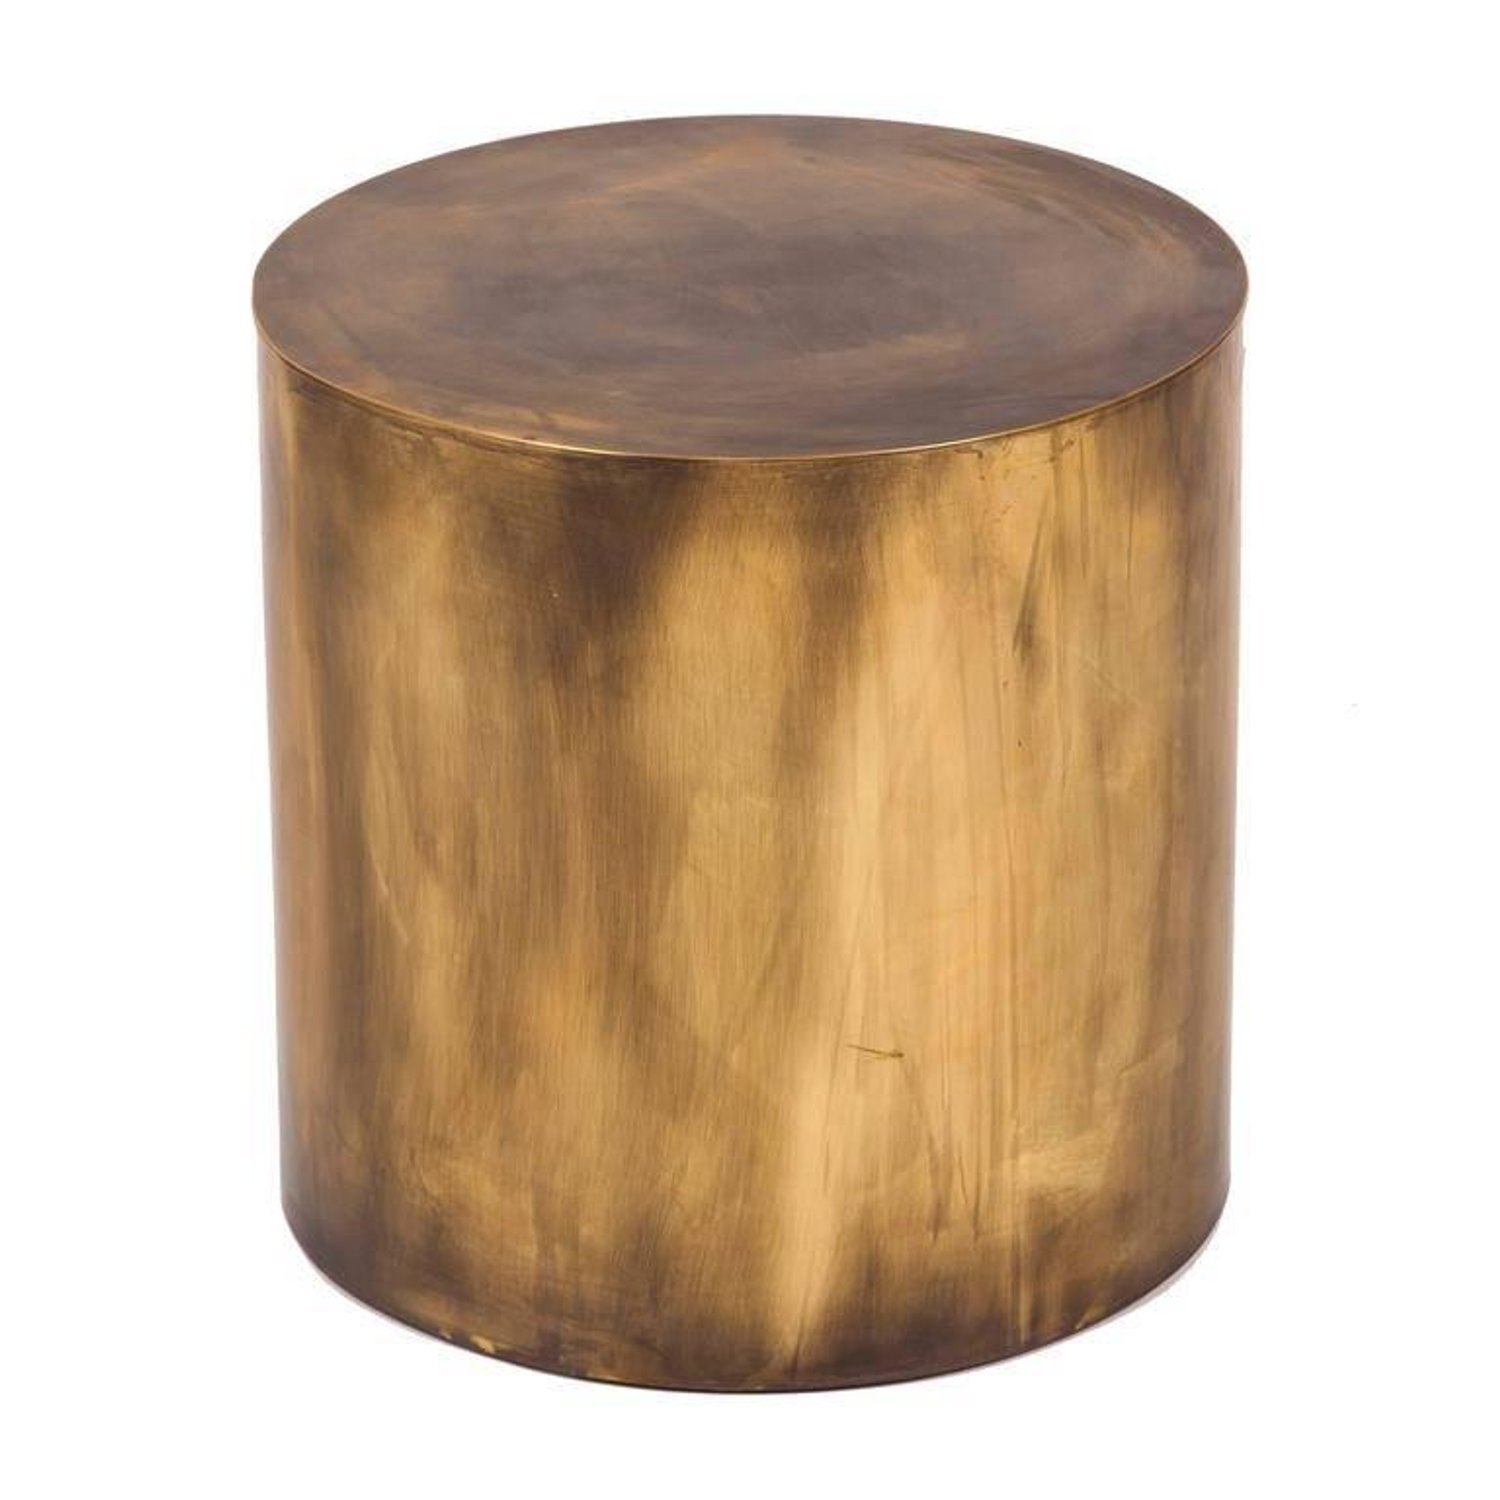 small polished brass pebble drum side table for master end tables wood living room couches large butcher block cutting board drawer accent very sofas quality sofa brands oval